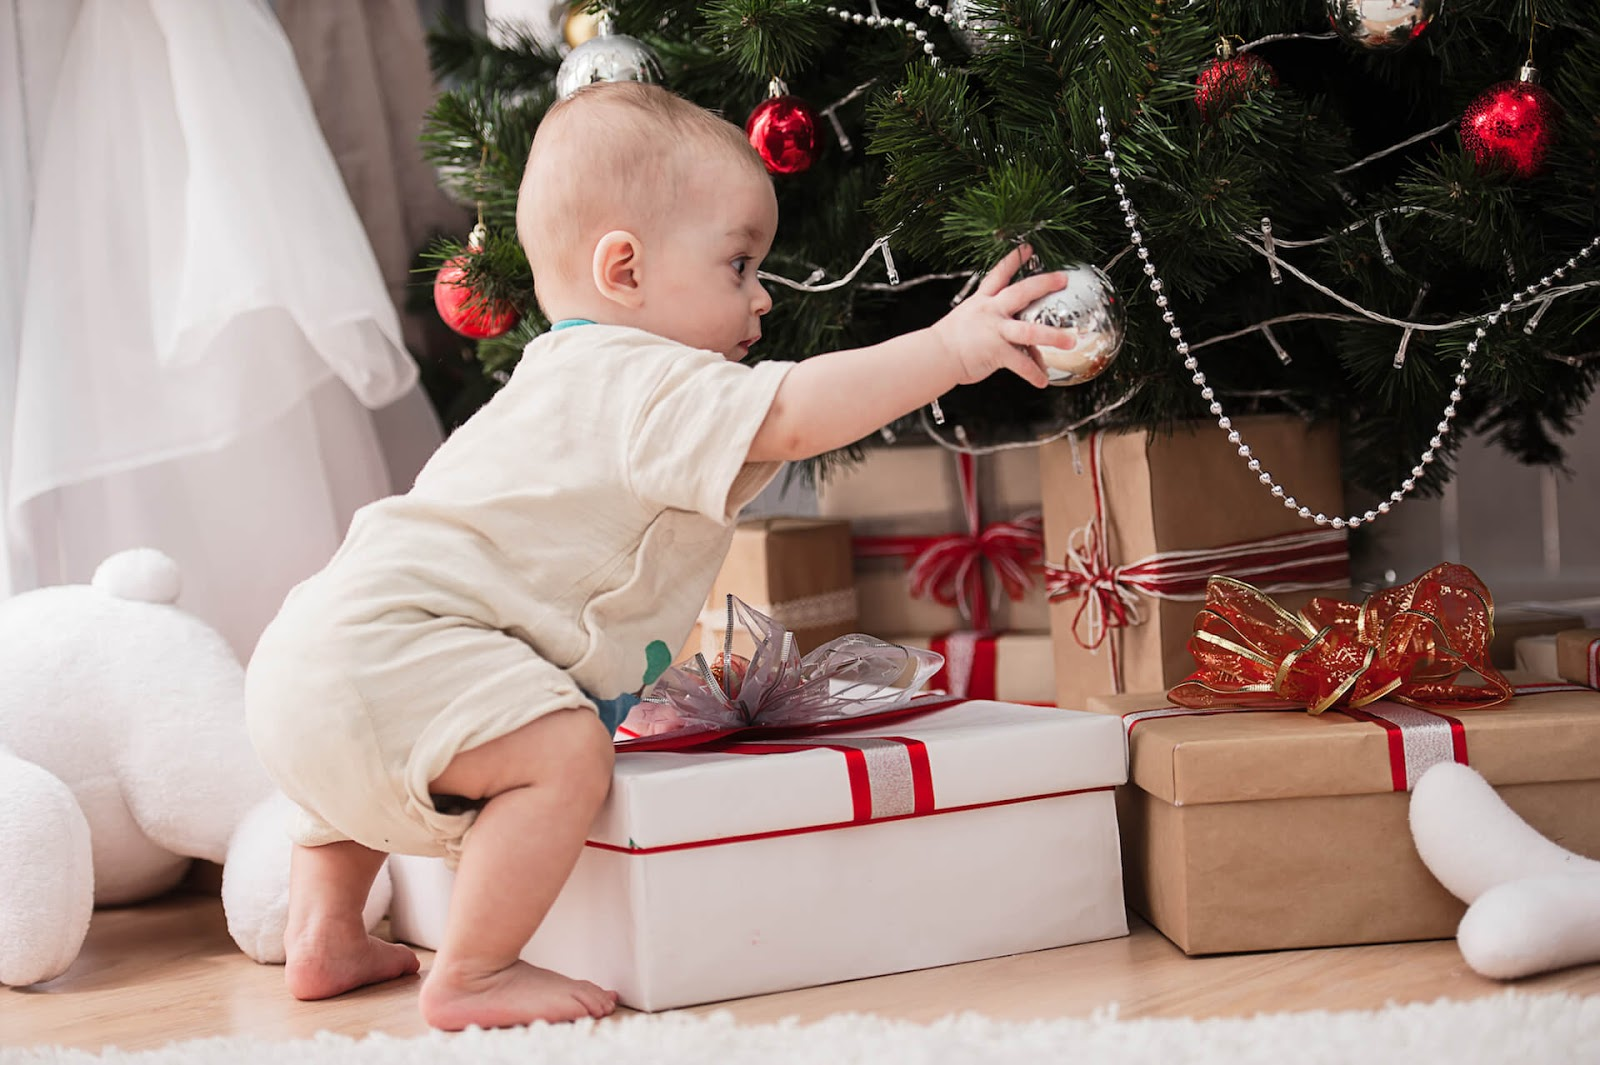 Baby playing with ornament on Christmas tree